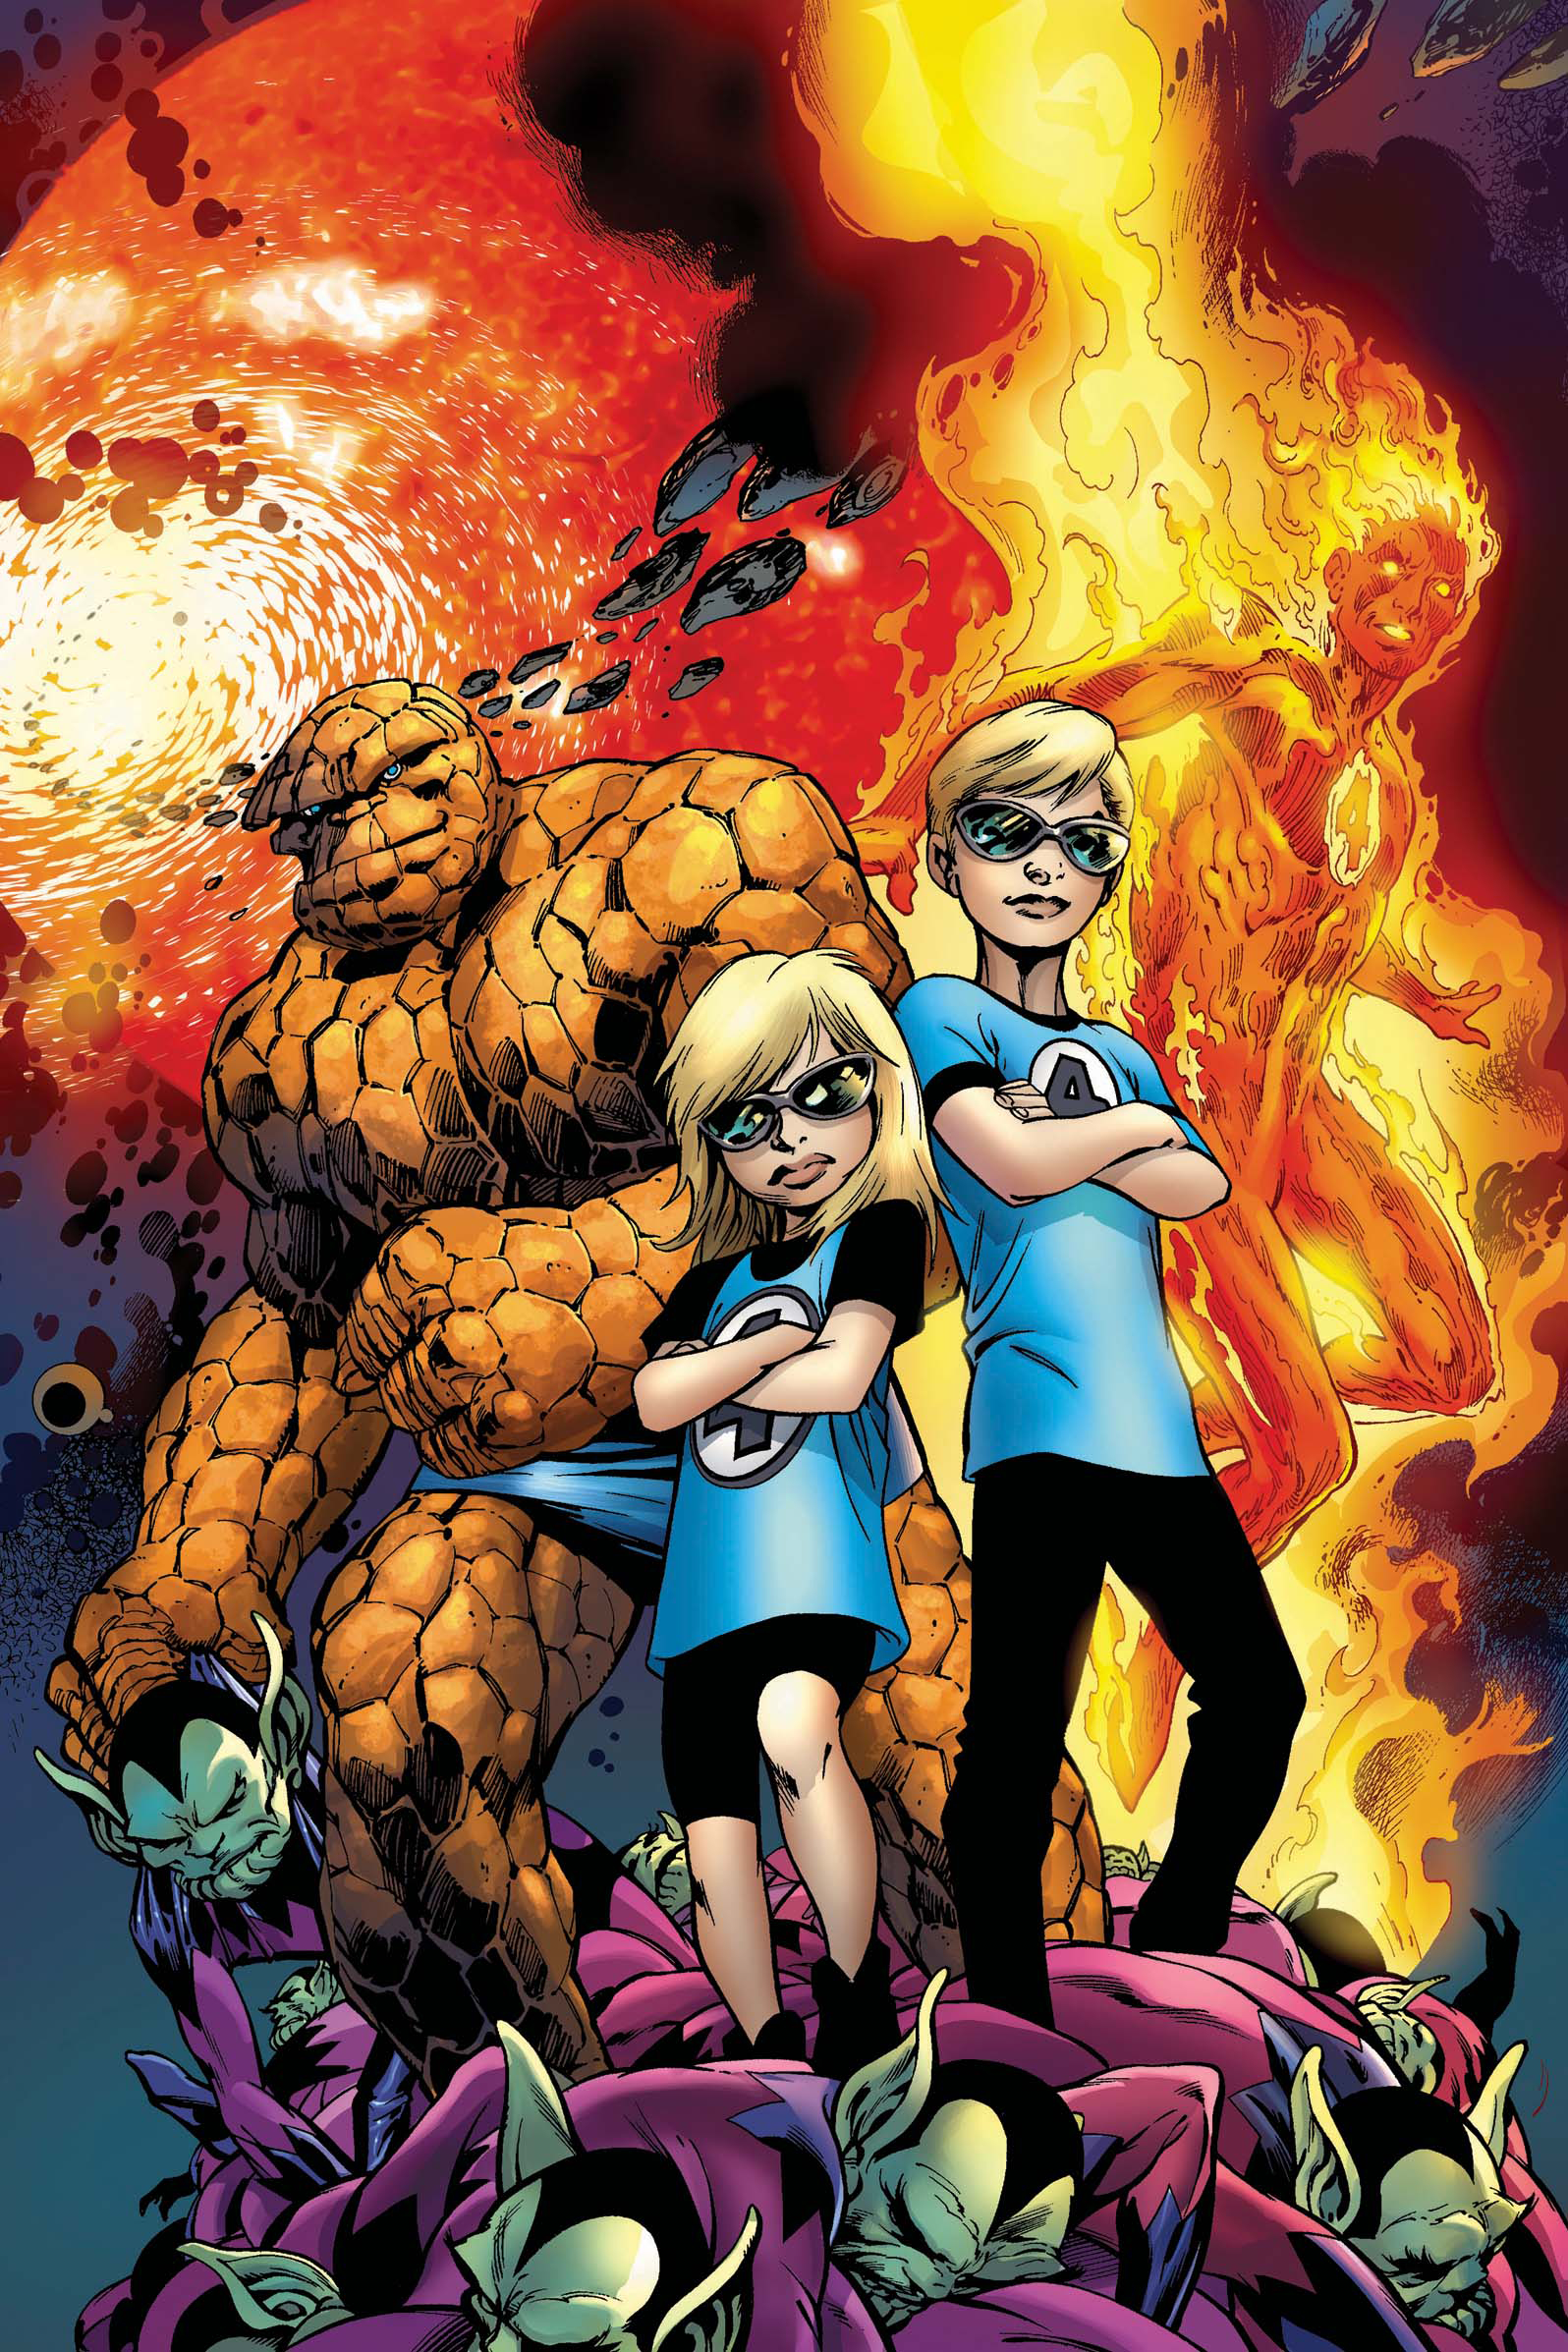 SECRET INVASION FANTASTIC FOUR #3 (OF 3) SI